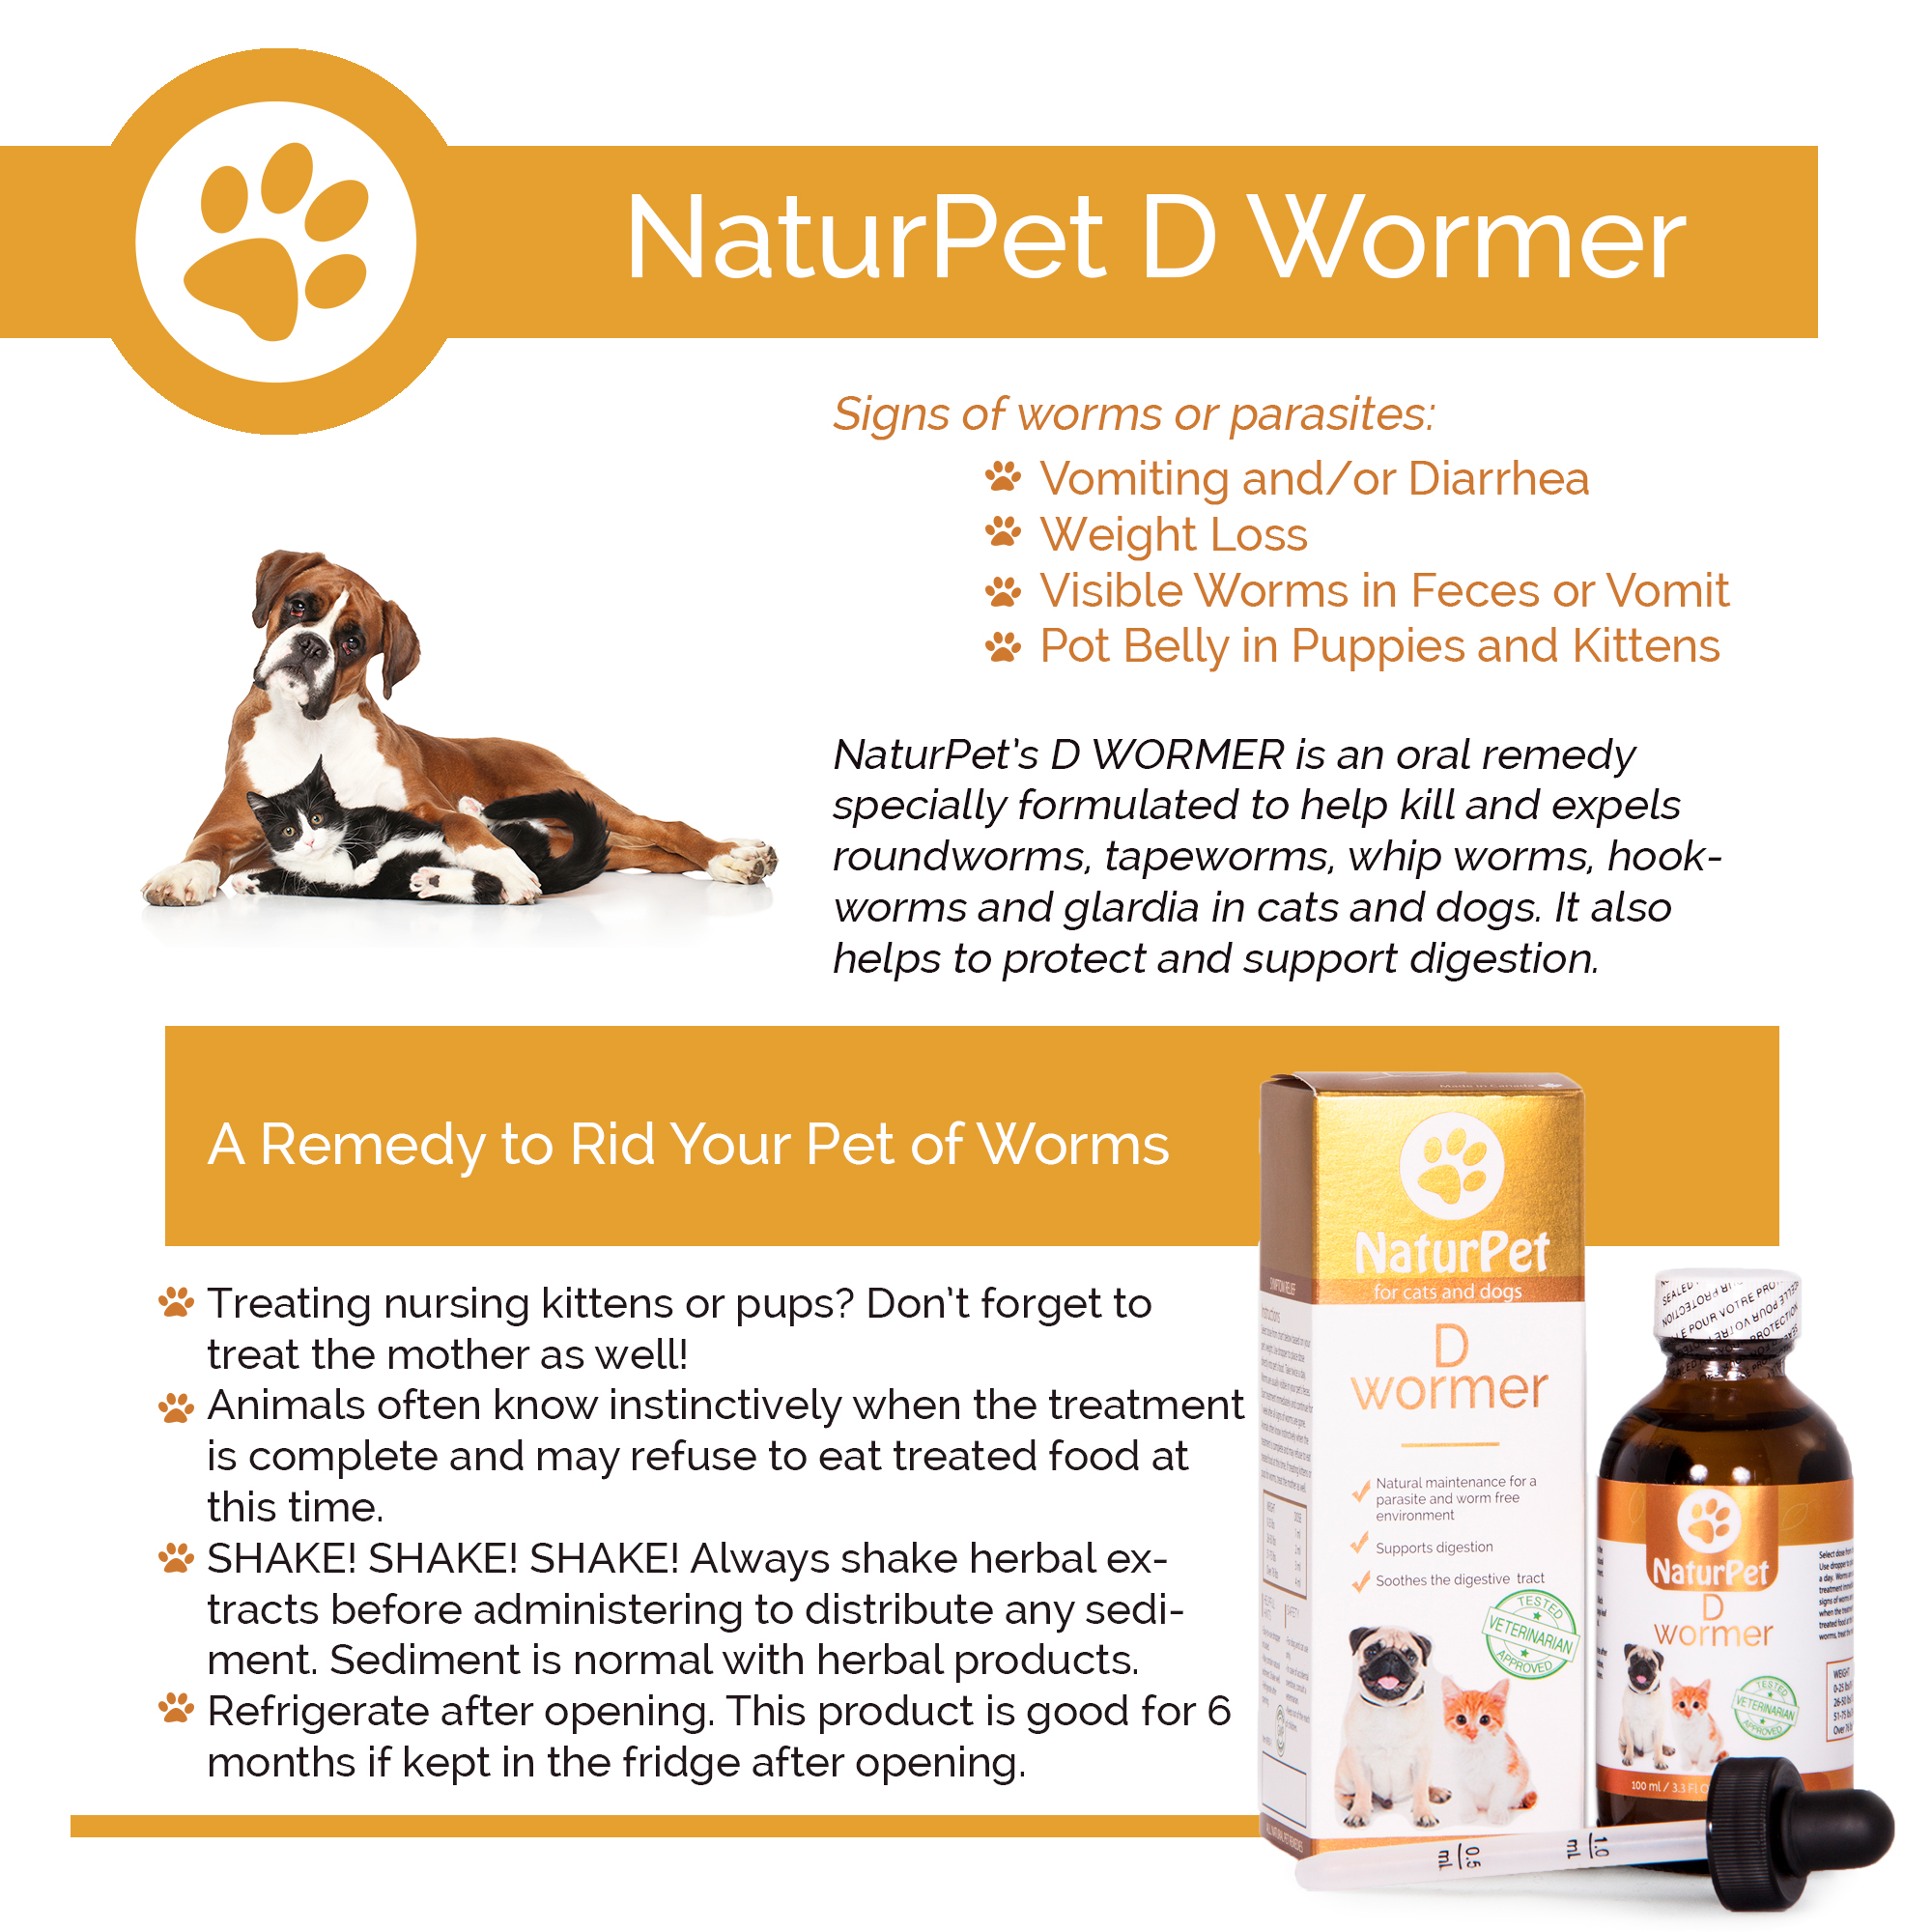 D-Wormer by Naturpet for repelling fleas, worms and parasites.